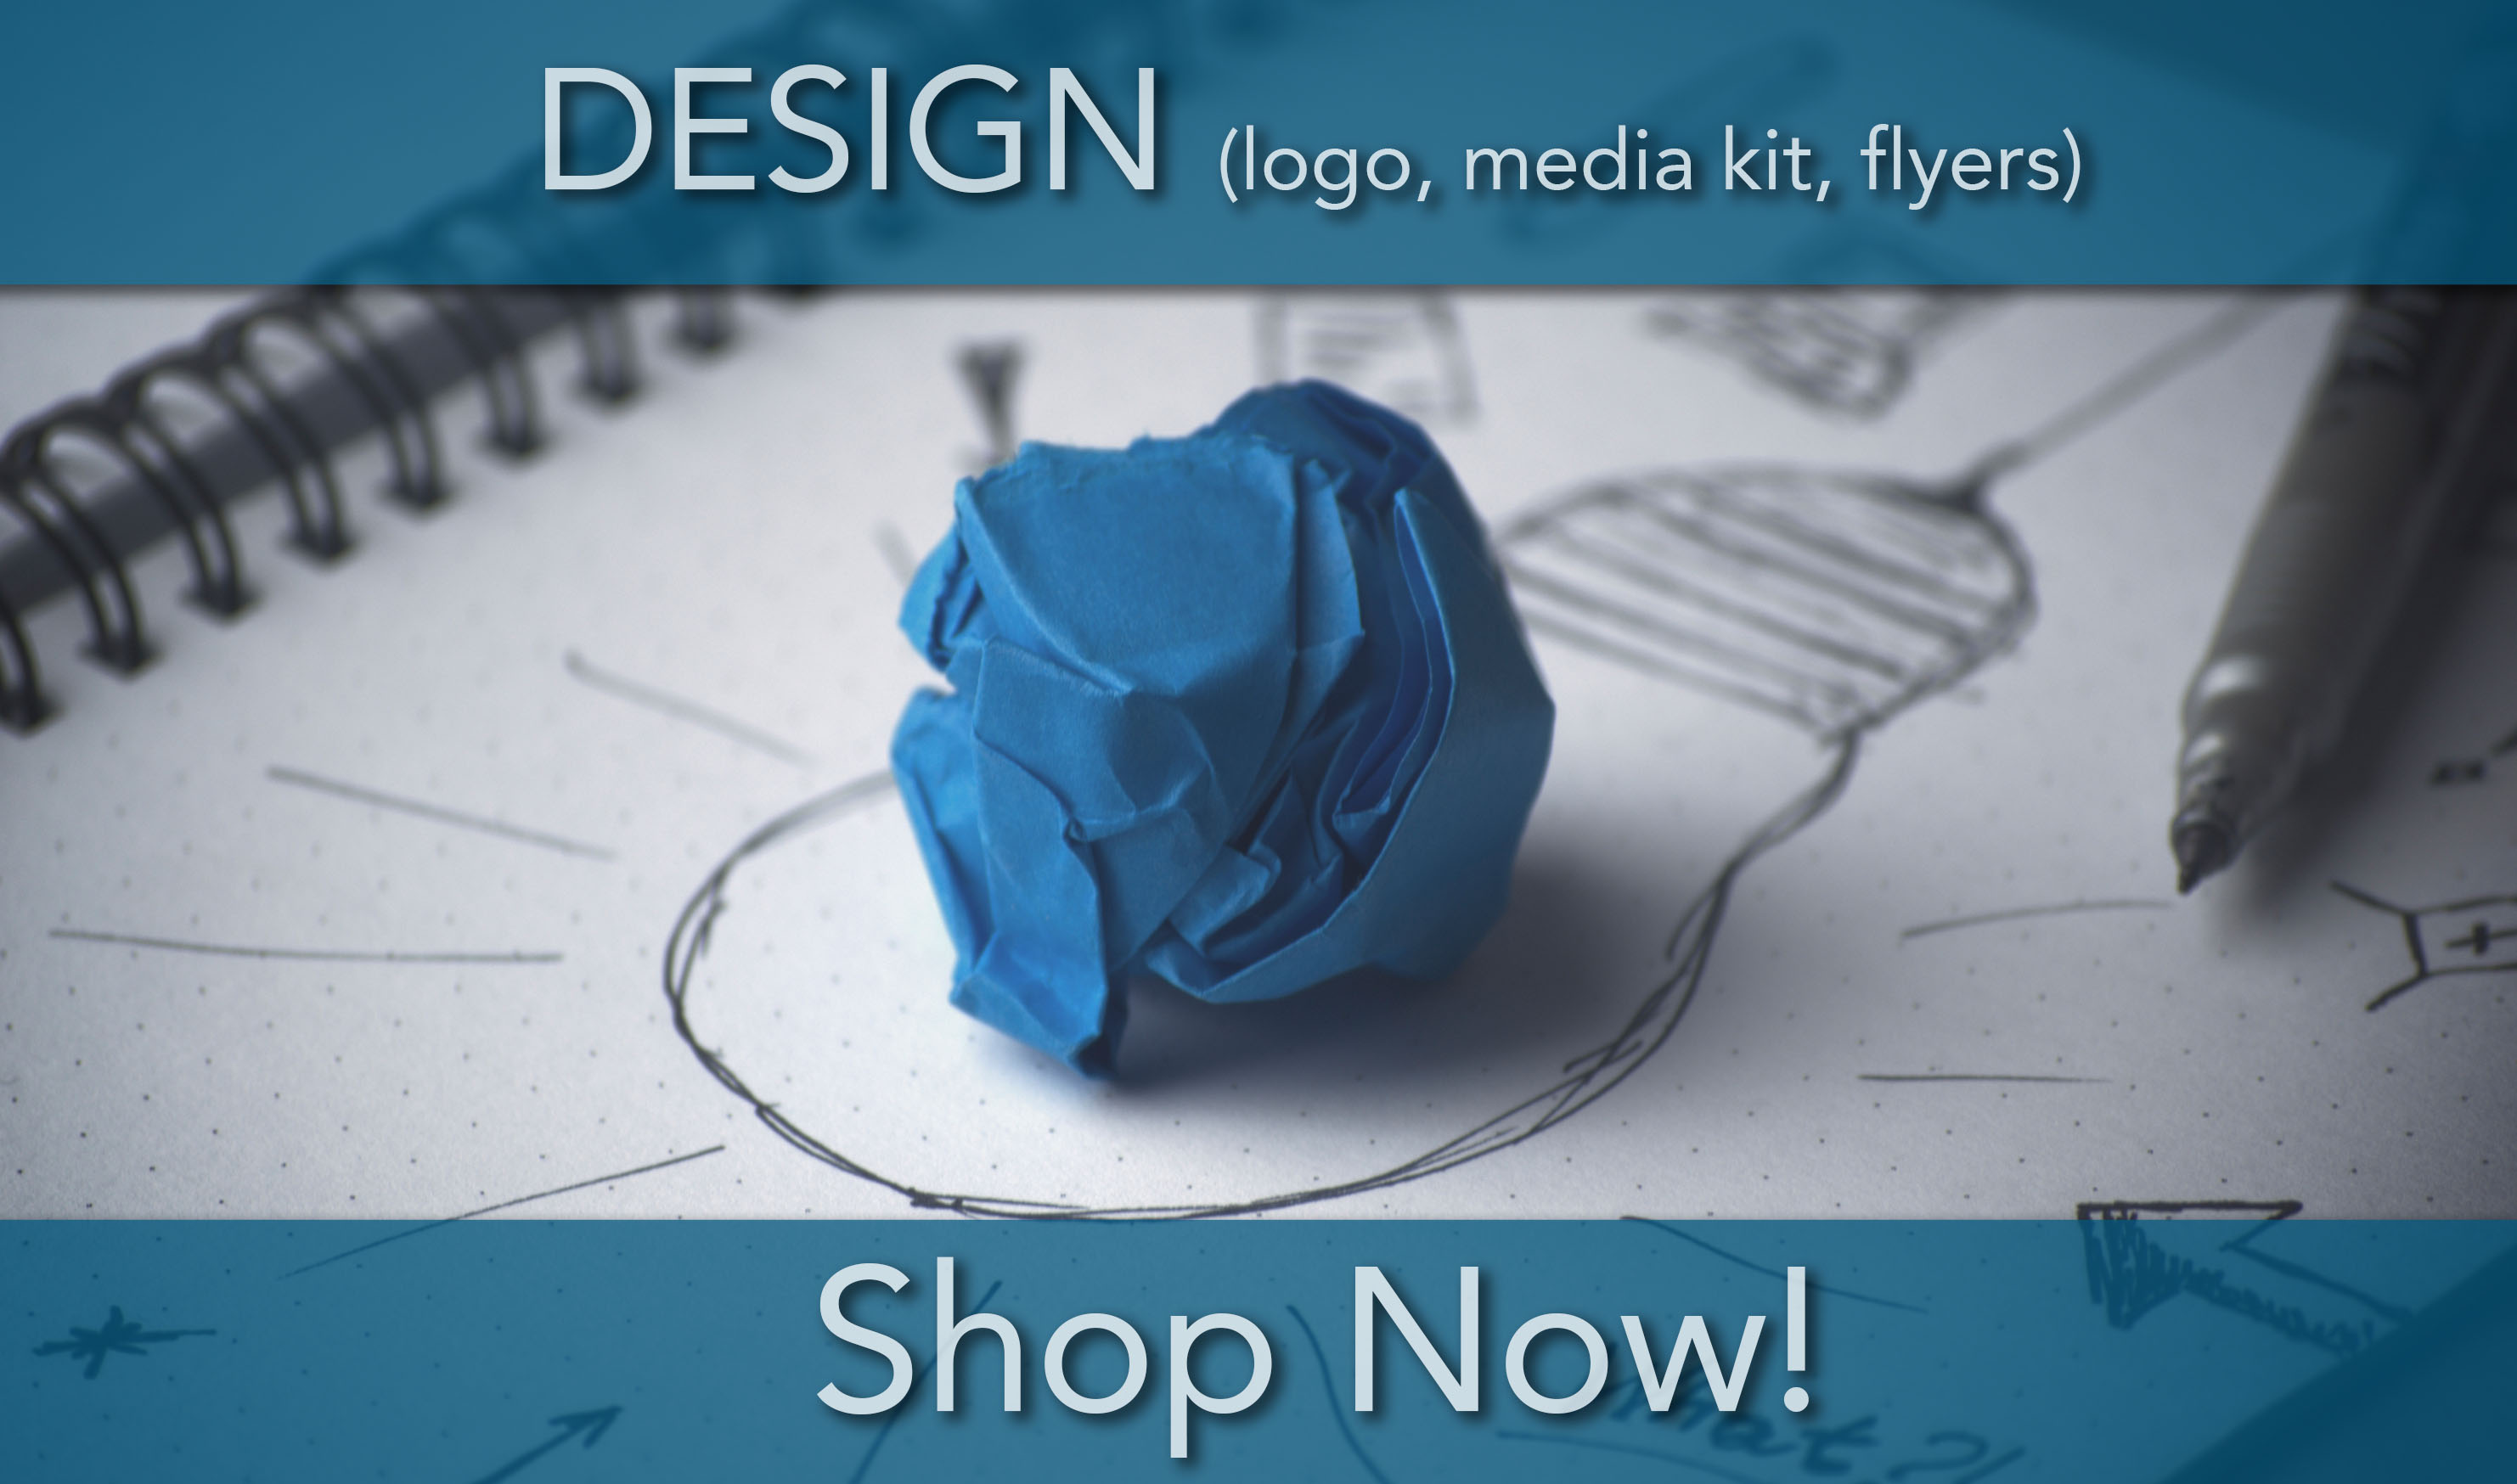 #1 Los Angeles, CA Designers for Hire Custom Designs Logo Creation Media Kits